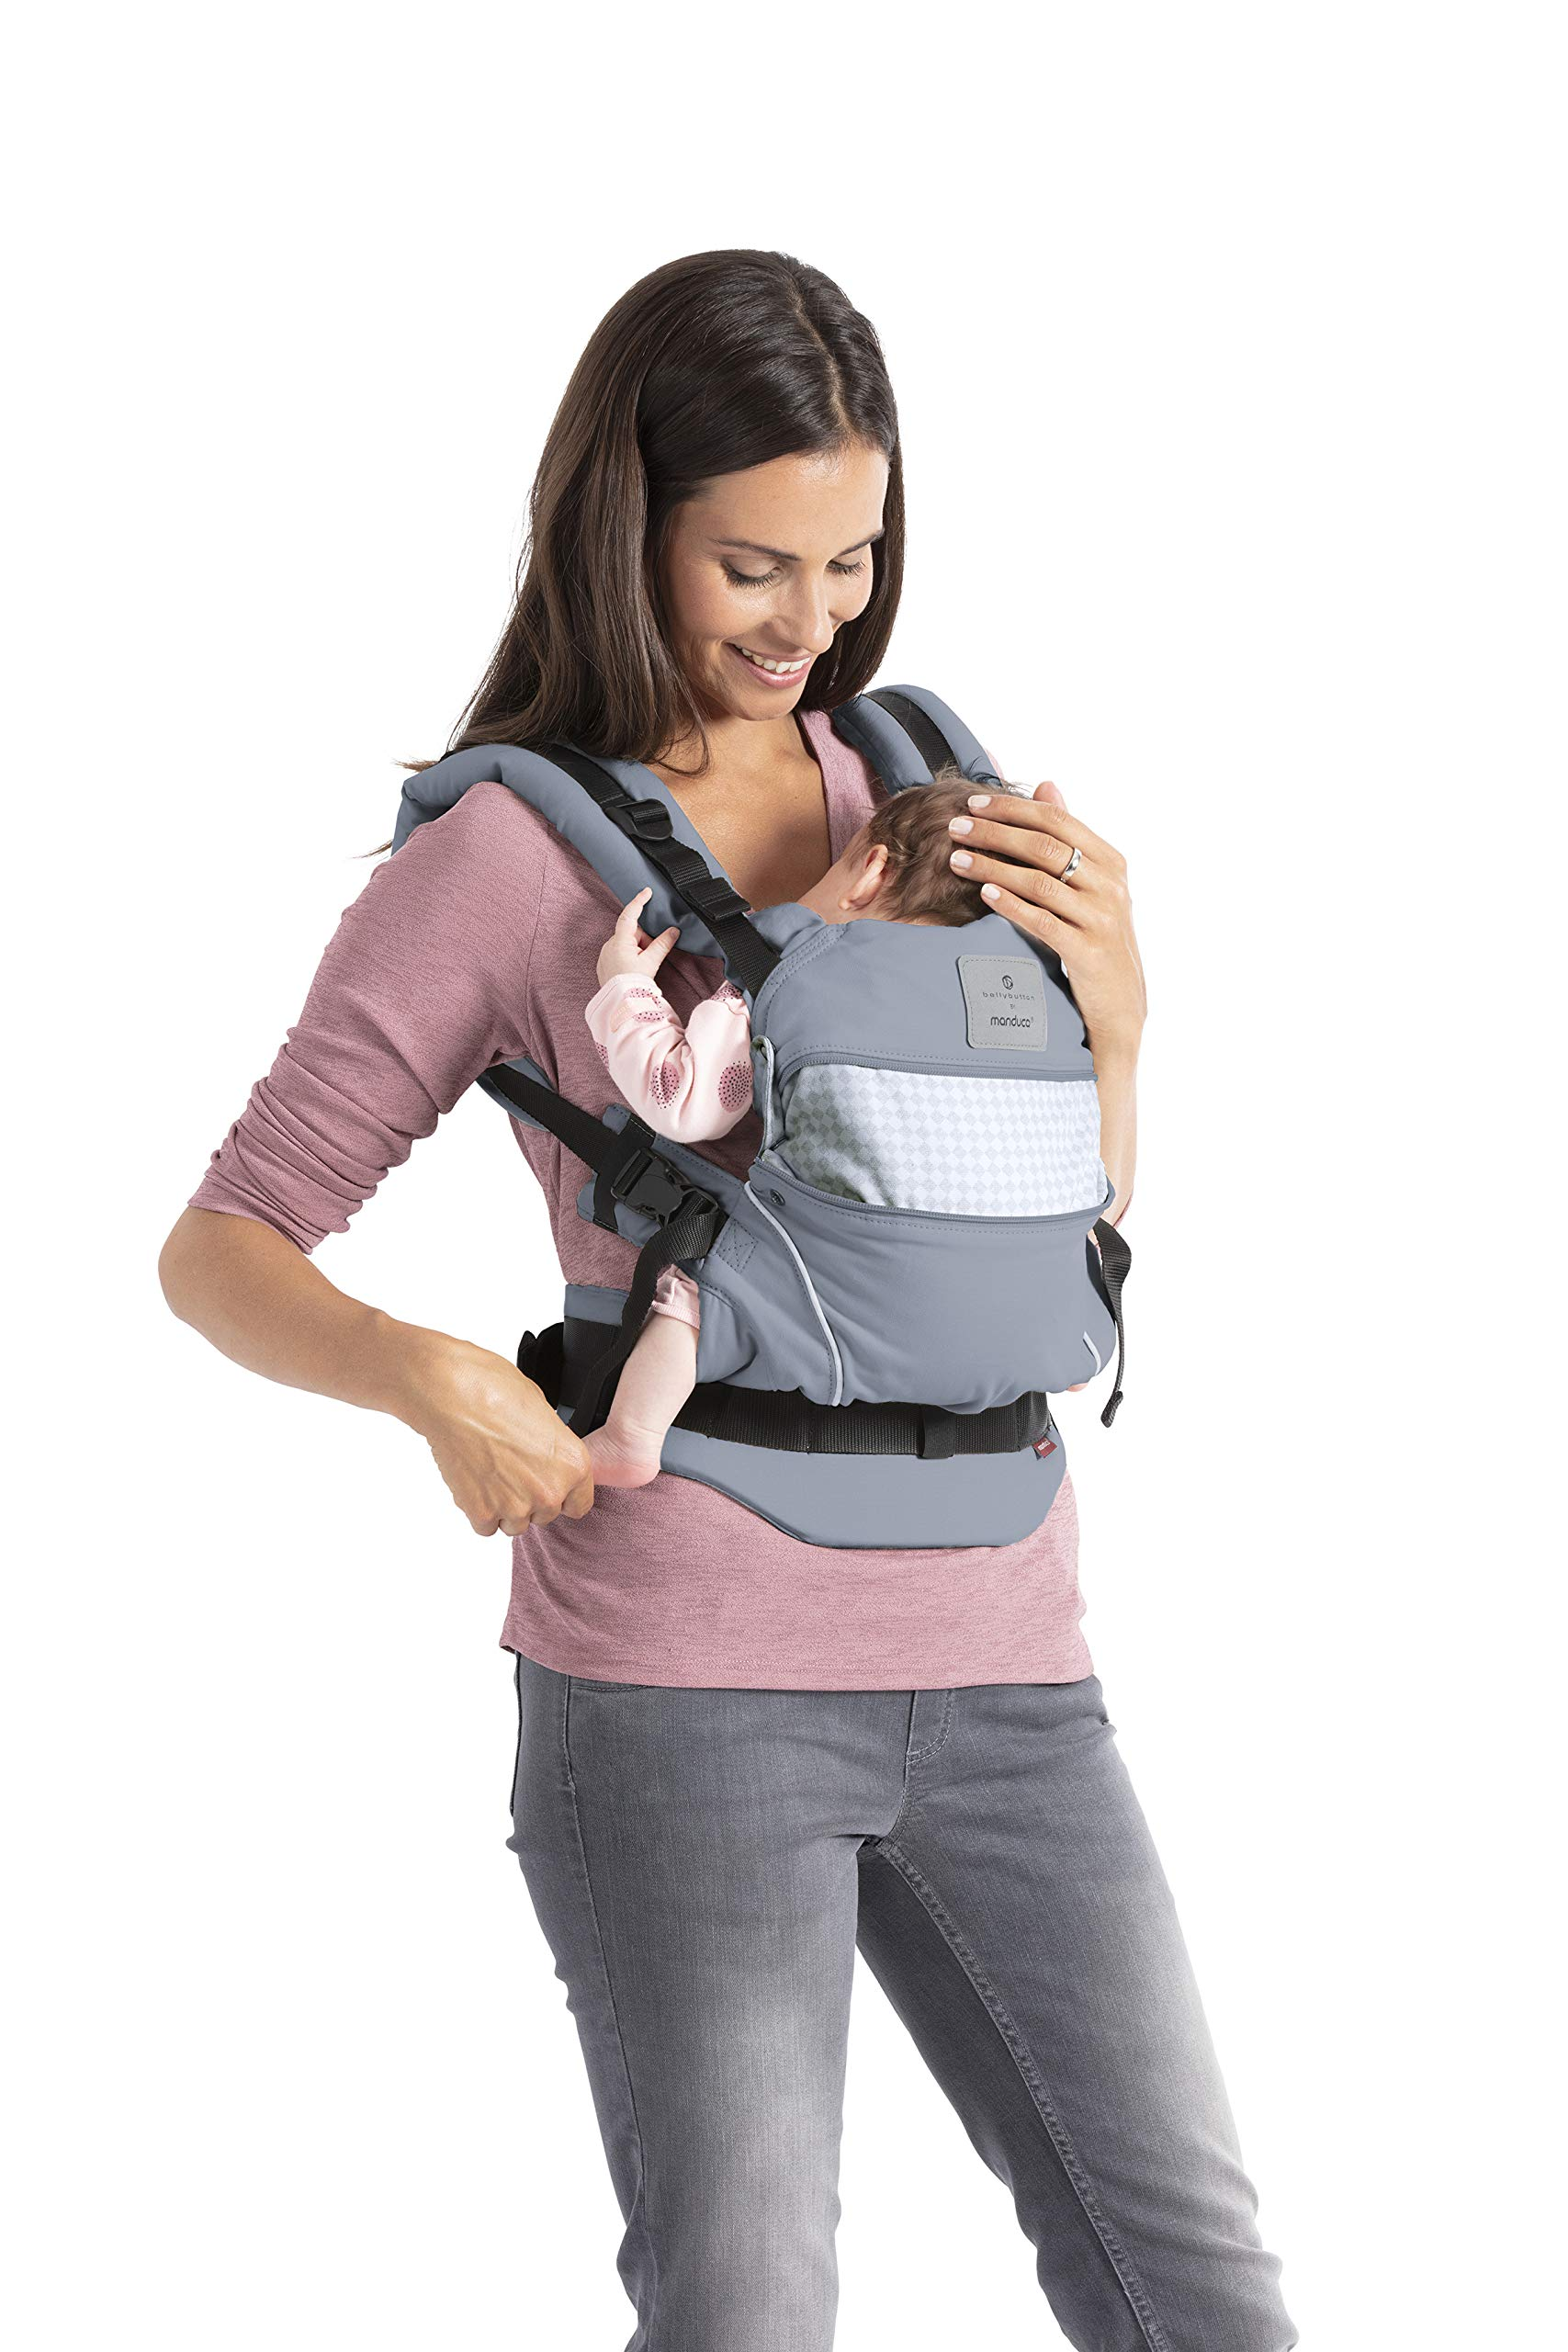 manduca First Baby Carrier > Bellybutton by manduca Edition, SoftCheck Blue < Child Carrier with Ergonomic Waist Belt & Patented Back Extension, Newborn to Toddler Manduca Trendy design in typical Bellybutton look, fine checked pattern on elegant grey, premium baby carrier made from 100% soft organic cotton with optimised finish, does not attract lint. Already integrated: seat reducer, stowable head and neck support, patented back extension, recommended accessories for newborns: Size-It (bridge reducer) and ZipIn ellipse. Ergonomic design for parents: anatomically shaped, dimensionally stable hip belt (up to 140 cm), 3-way adjustable soft padded shoulder straps, relieves the back and distributes the weight. 3